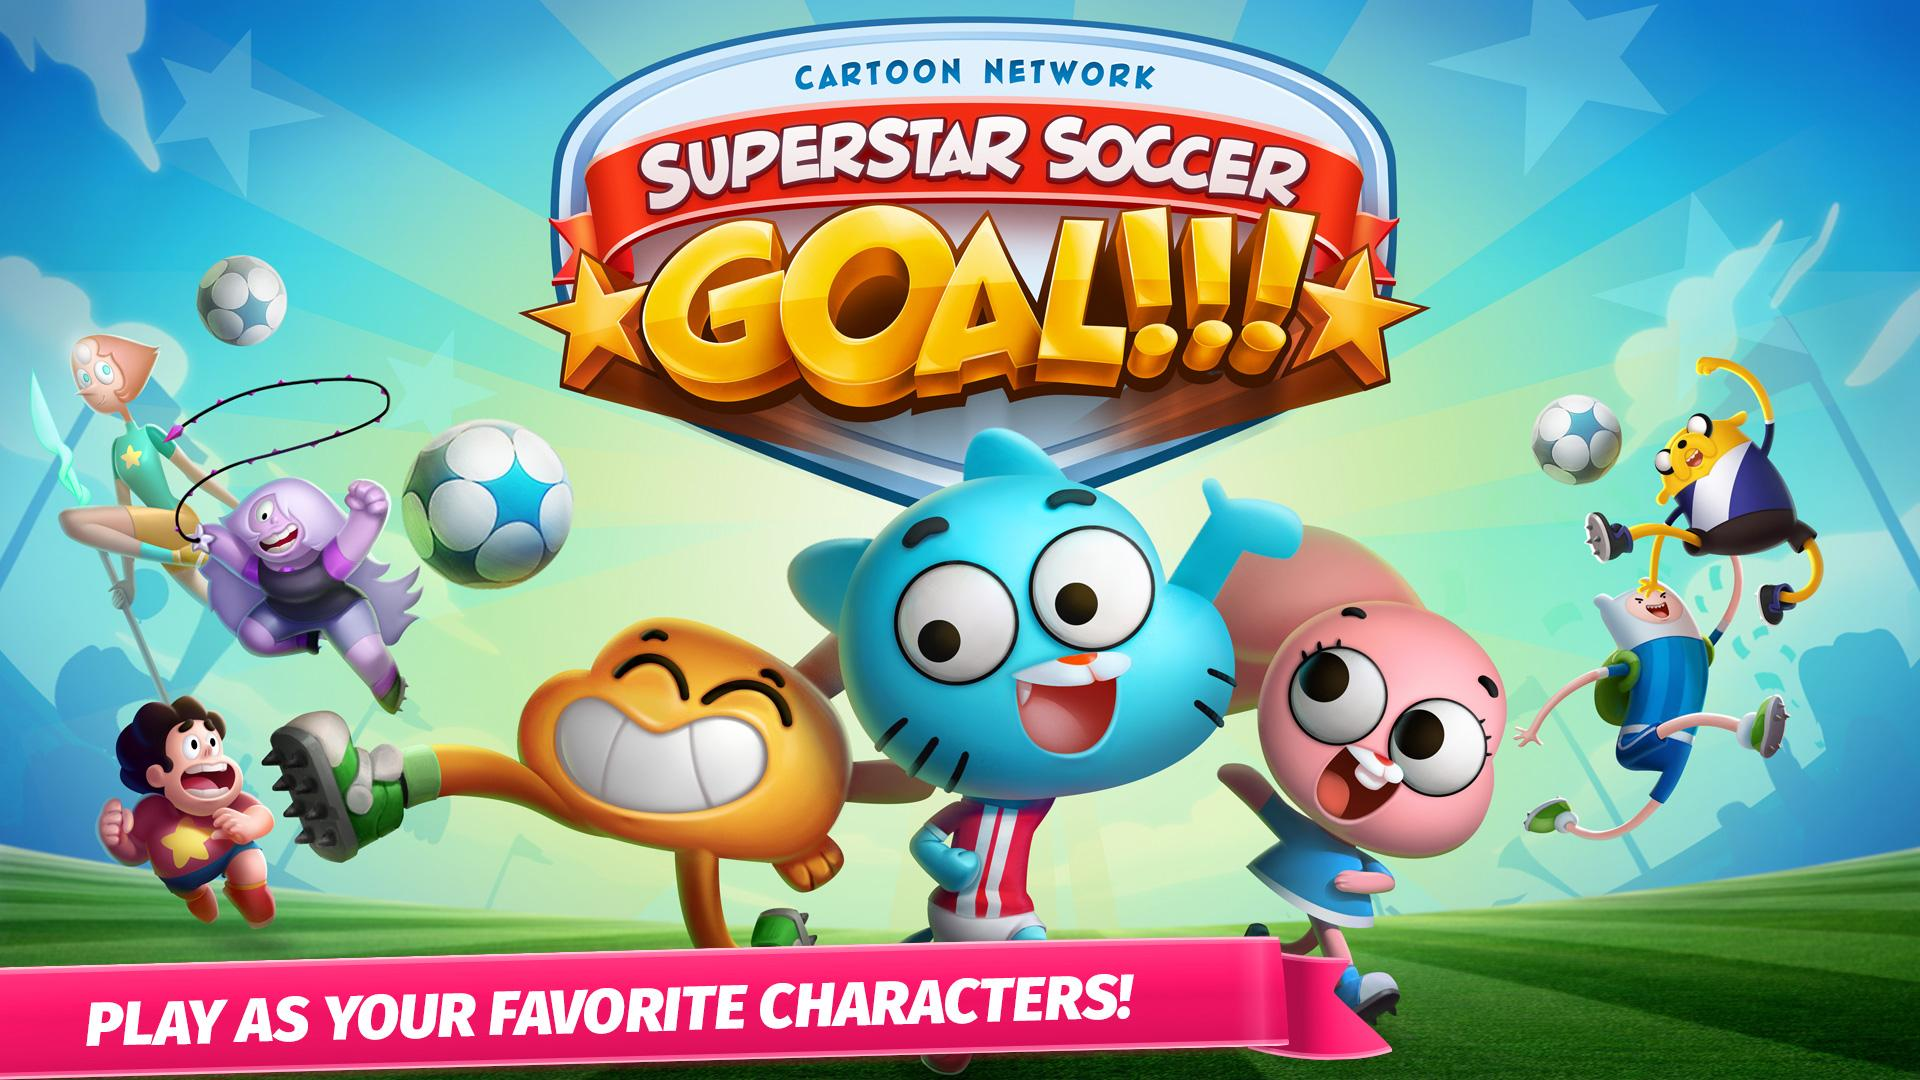 CN Superstar Soccer: Goal!!! screenshot #6